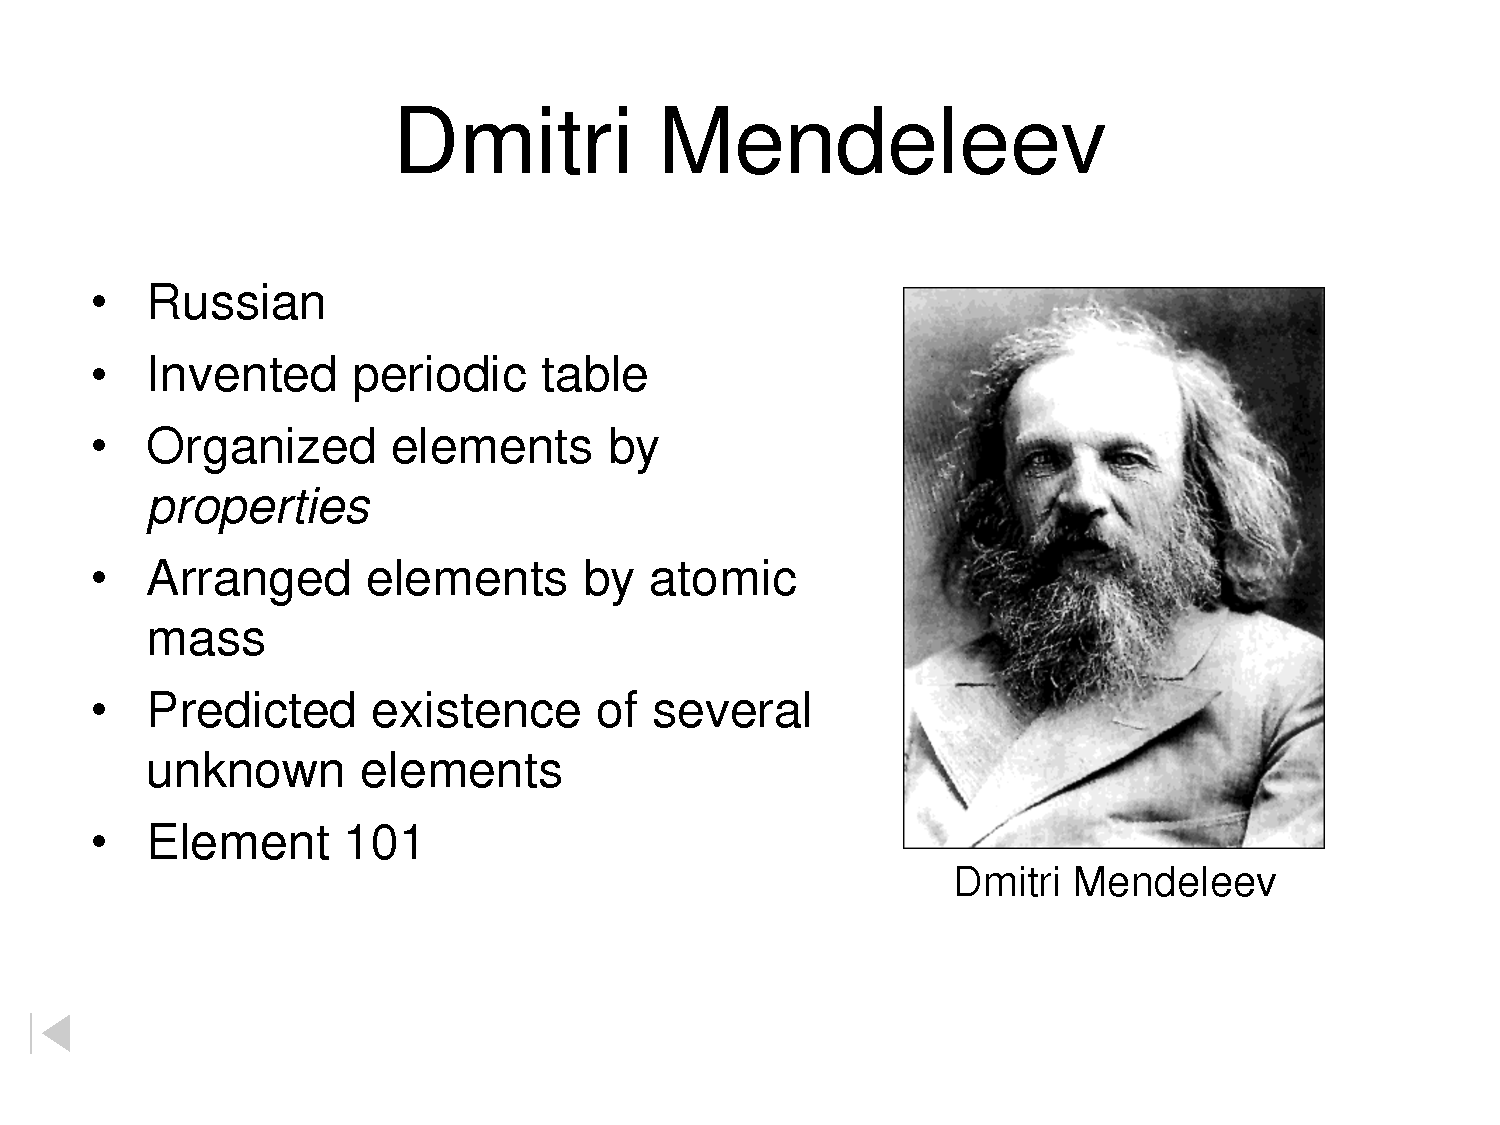 Wumbo science periodic table dmitri mendeleevs is the creator urtaz Choice Image